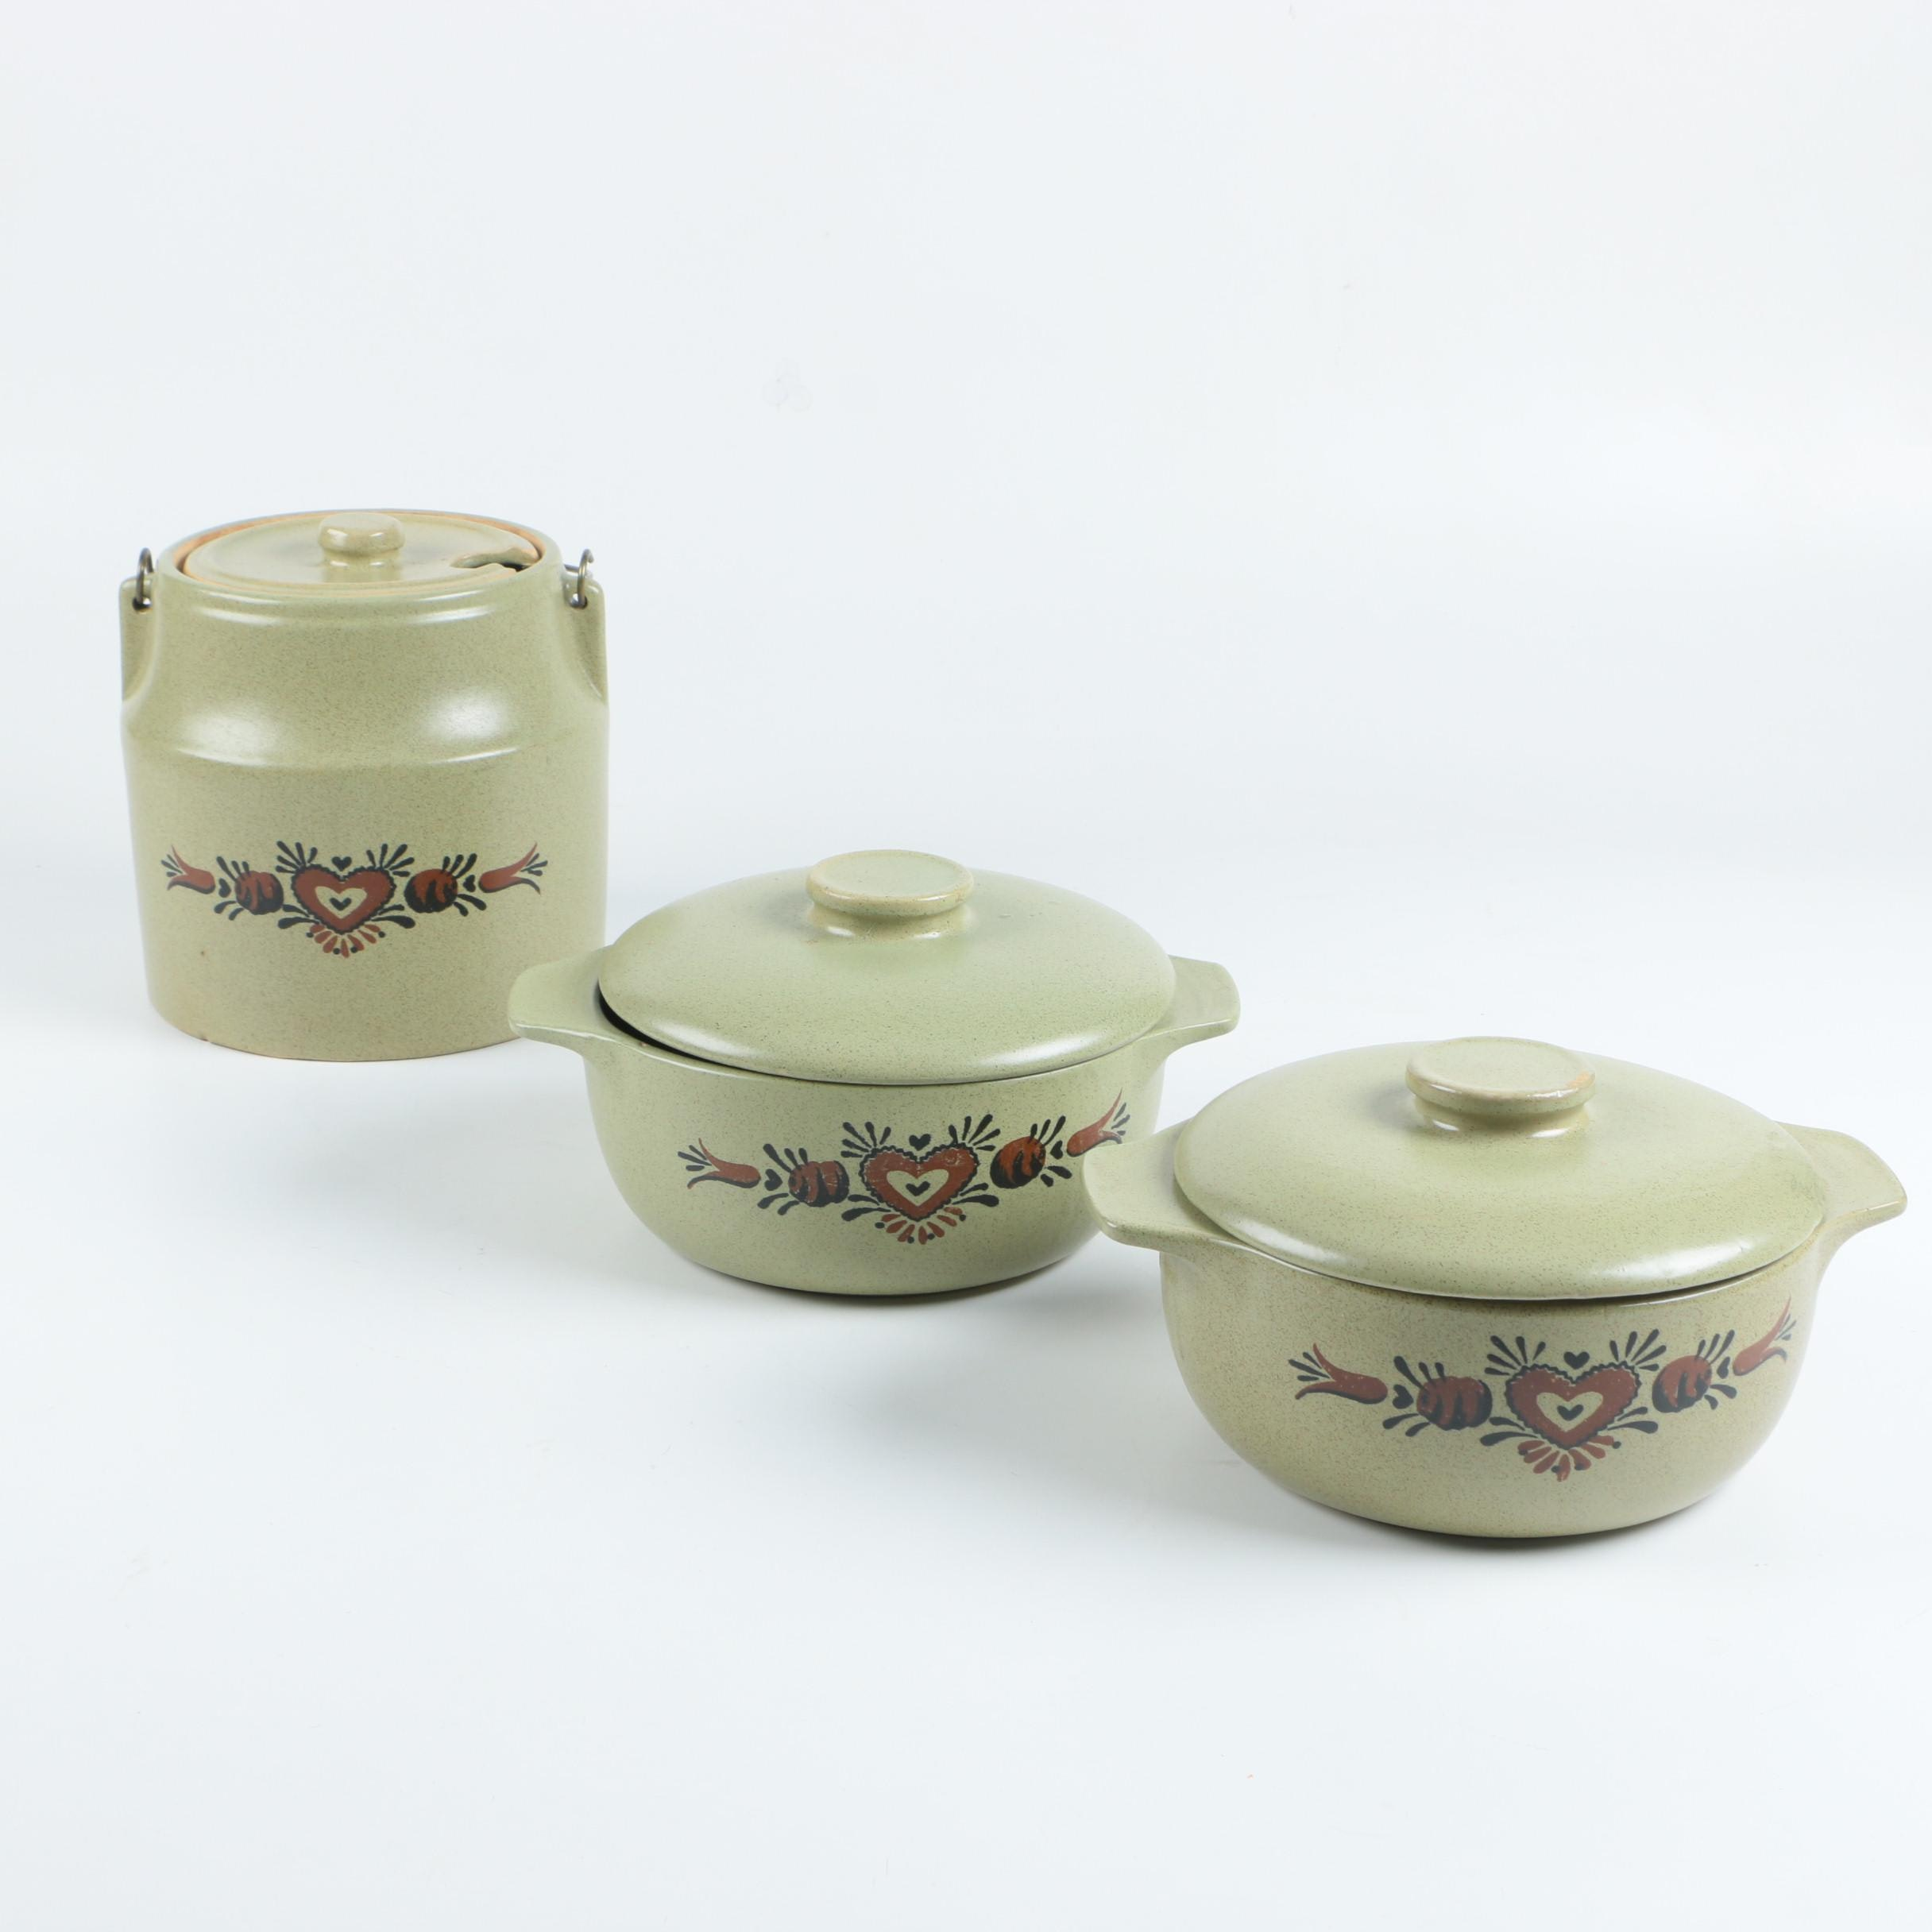 Vintage Western Stoneware Company Cookware